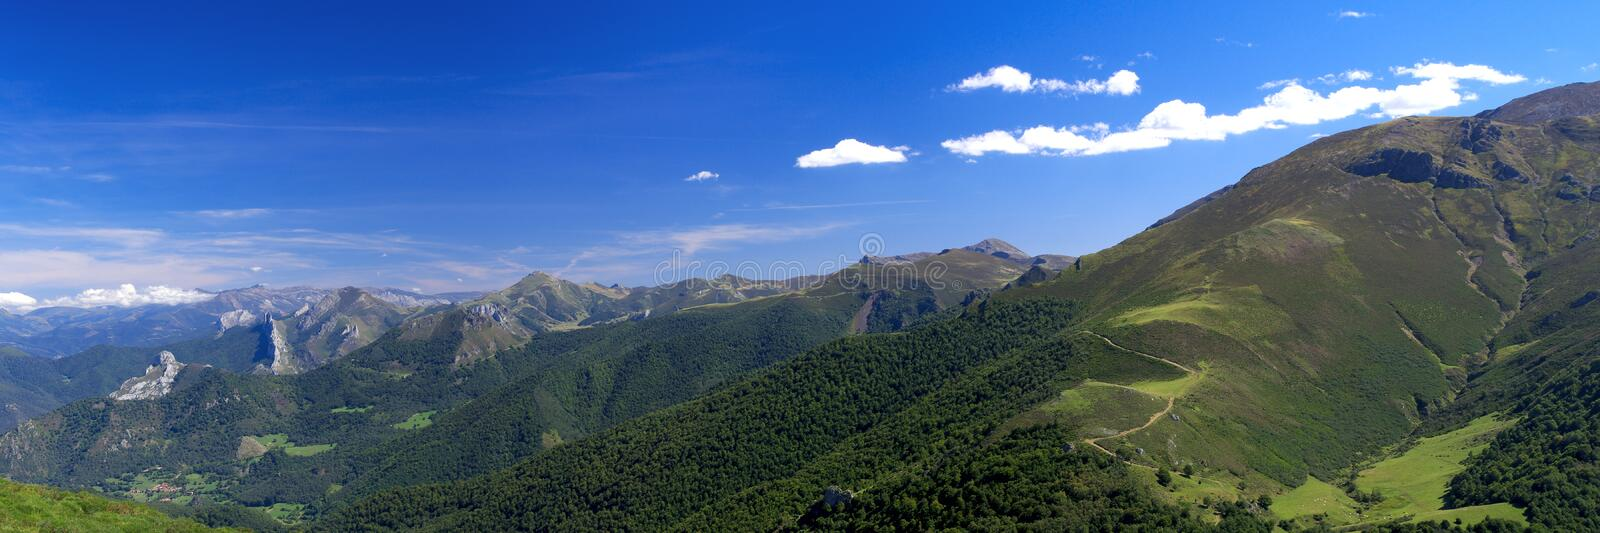 Cantabrian Mountains. Panoramic view of Cantabrian Mountains, Asturias. Spain royalty free stock image